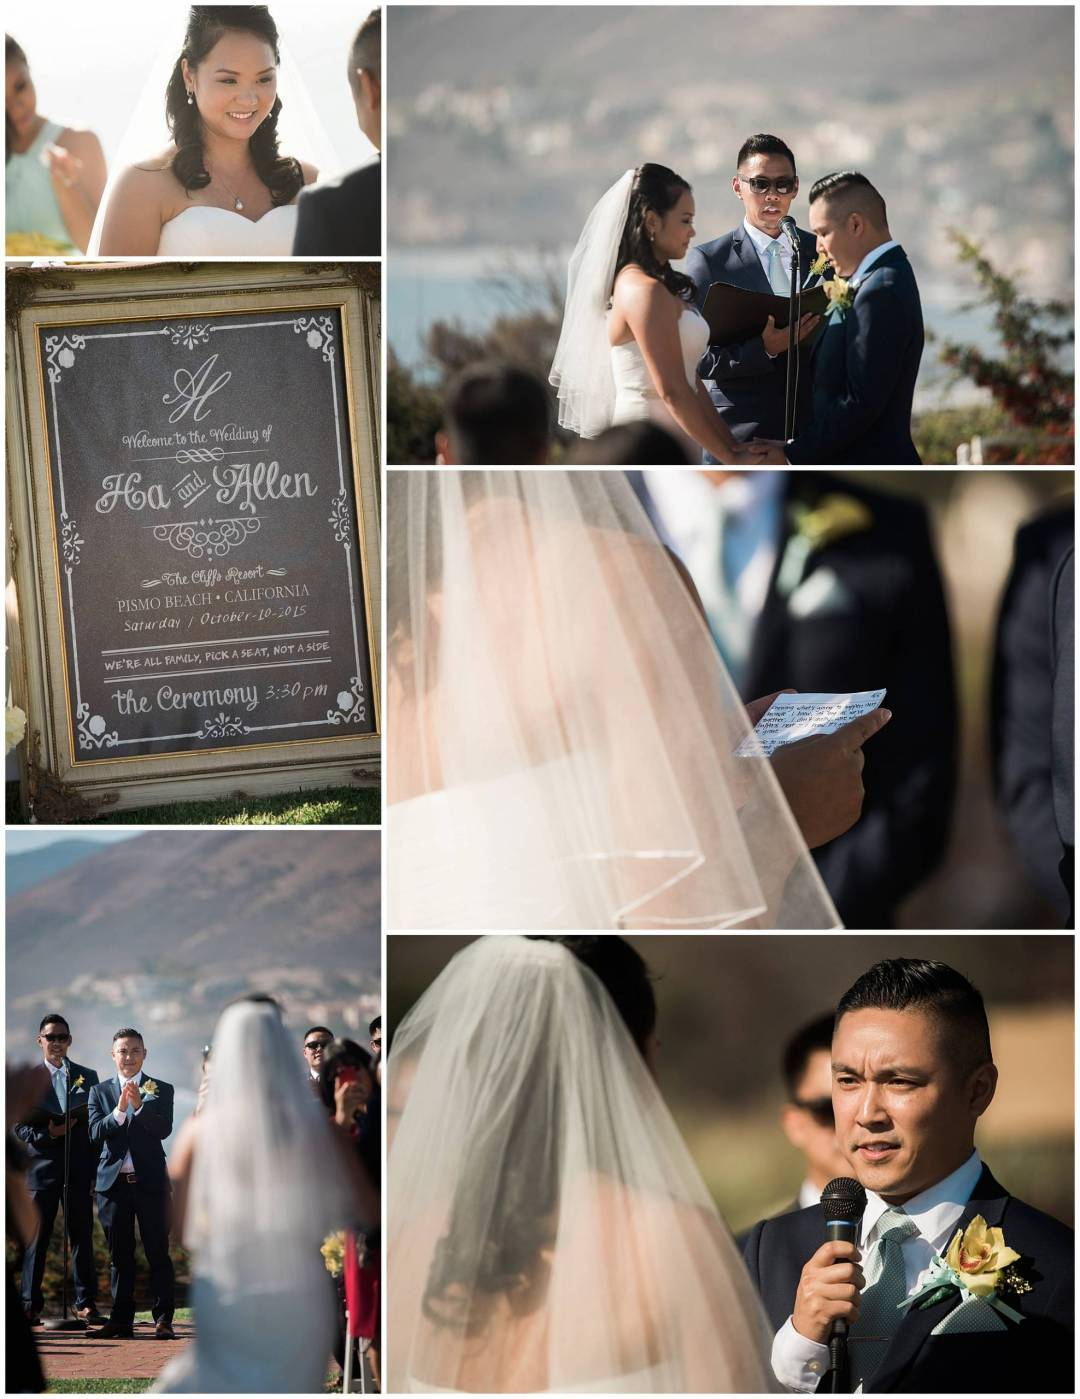 Ha & Allen Wedding Third Element Photography & Cinema Pismo Beach Cliffs Resort Central Coast Hybrid Film Wedding Photographer_0025